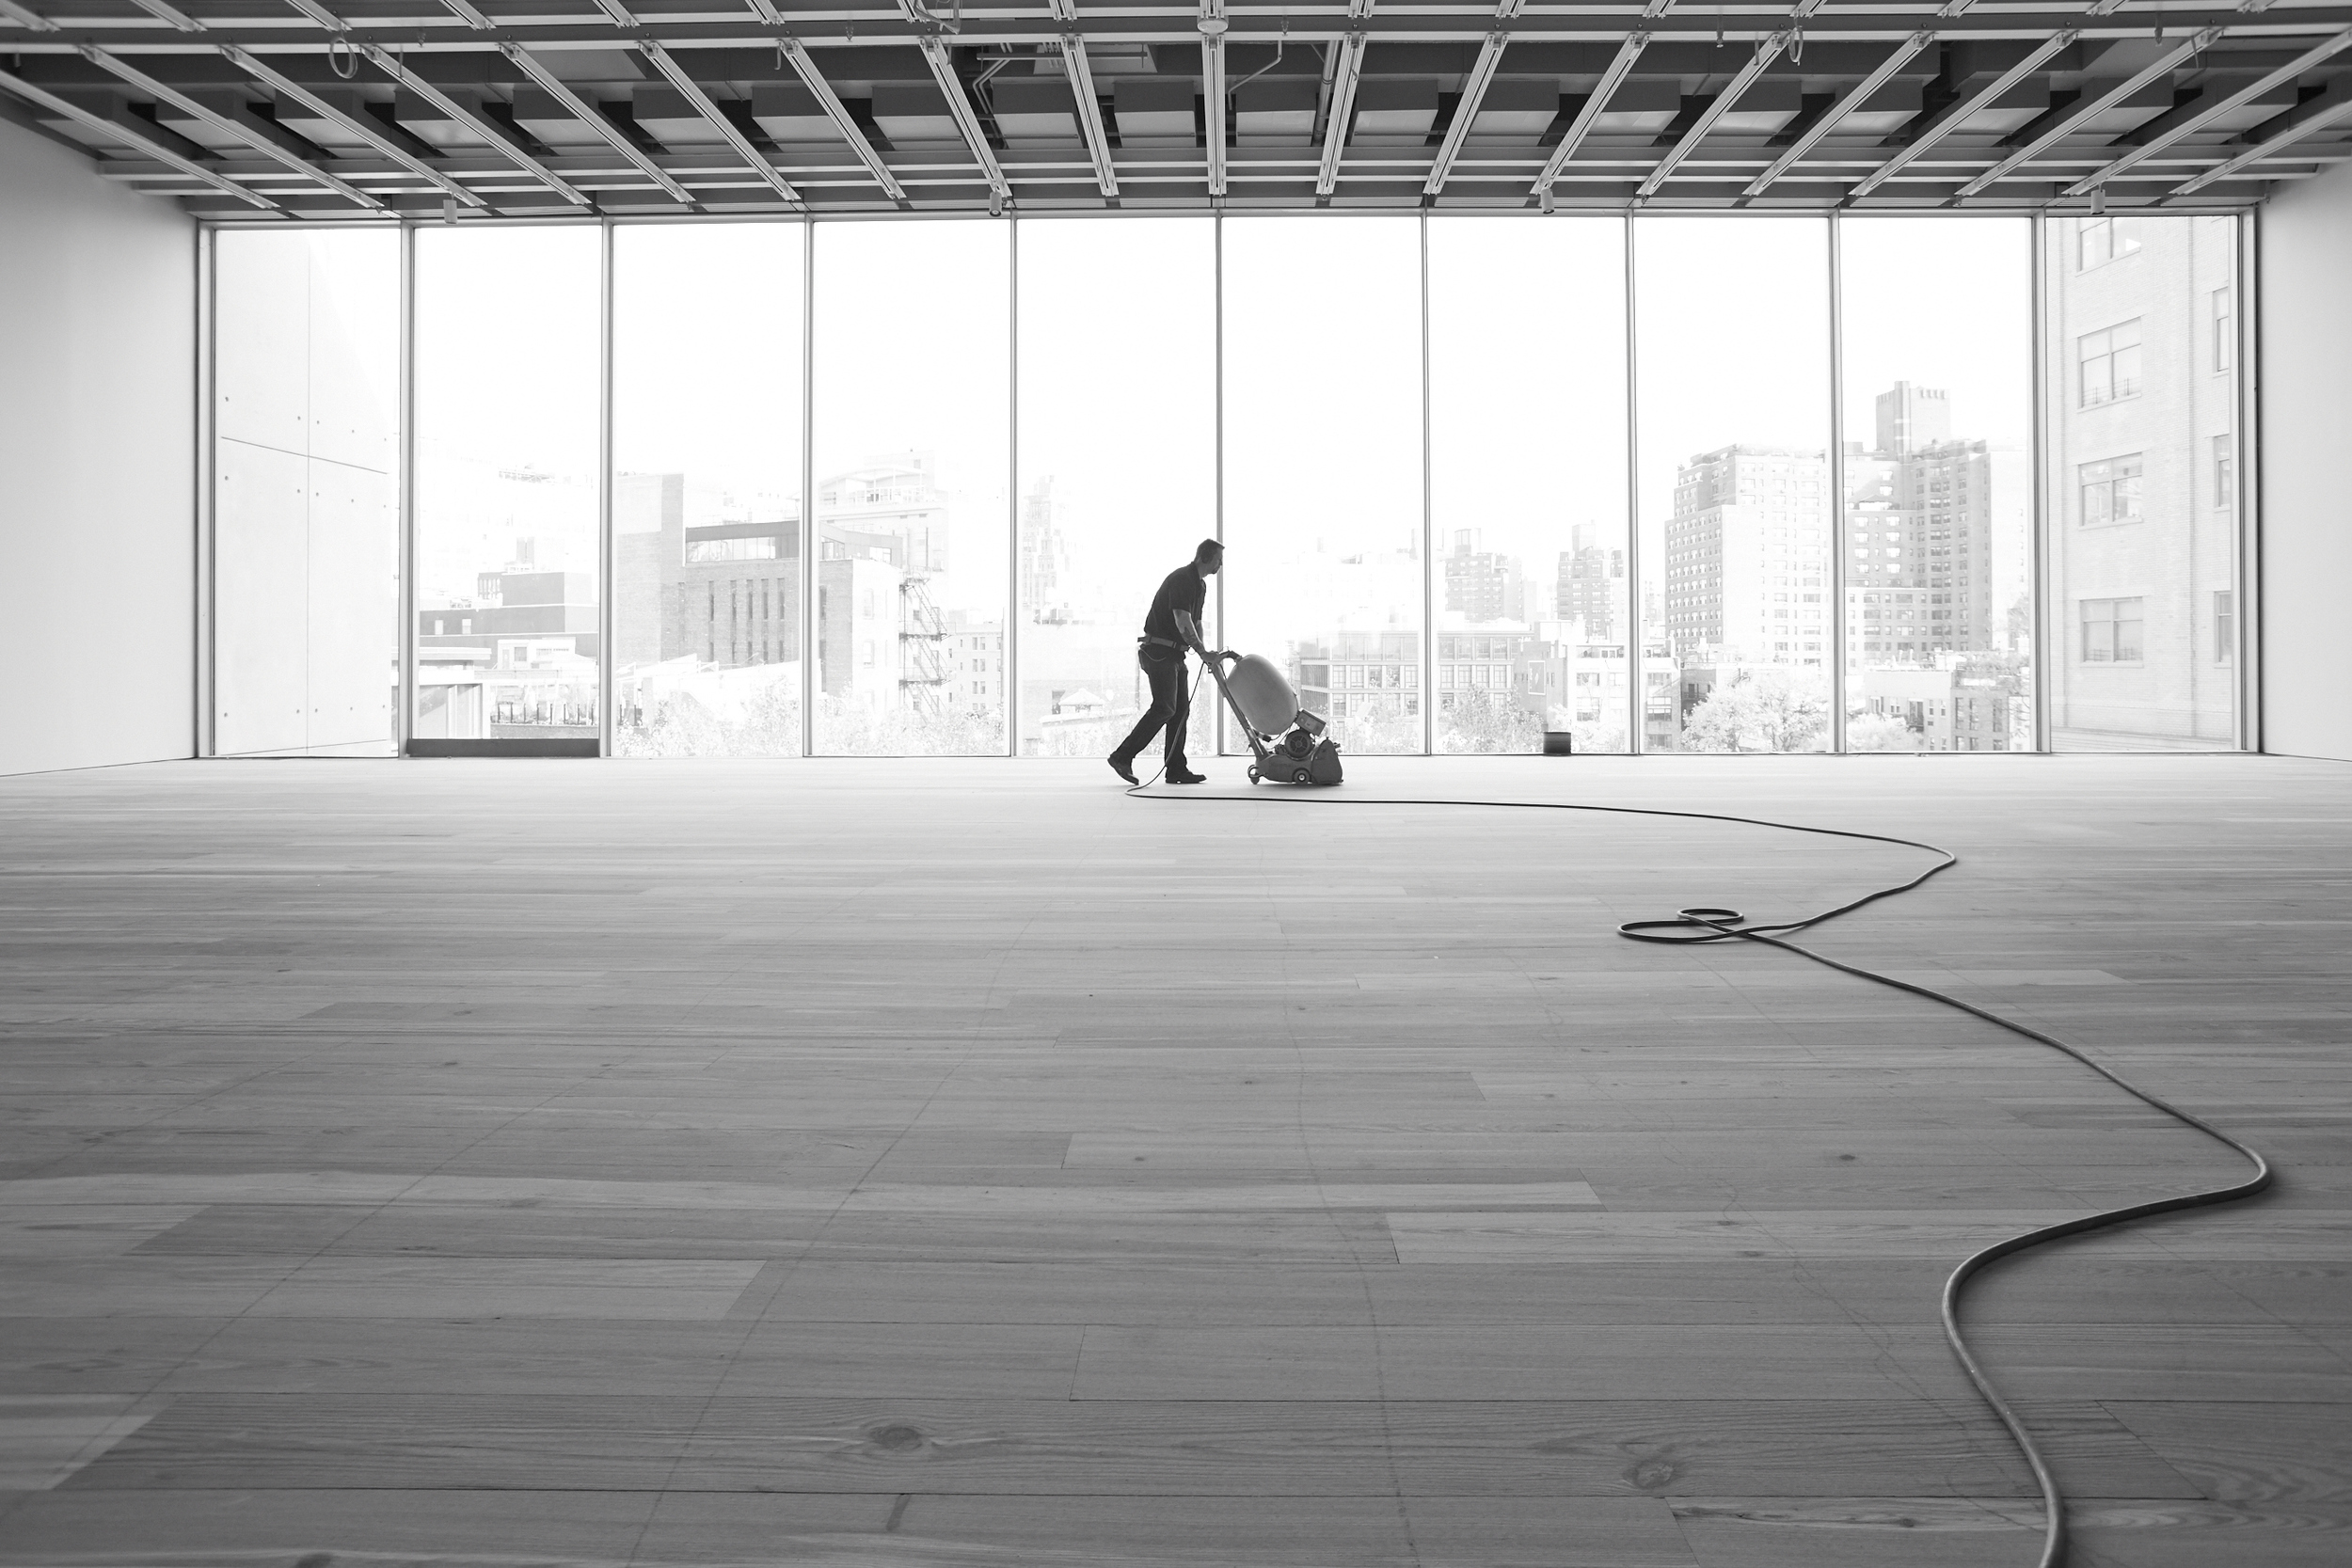 Floor Install, NYC Skyline in the background.